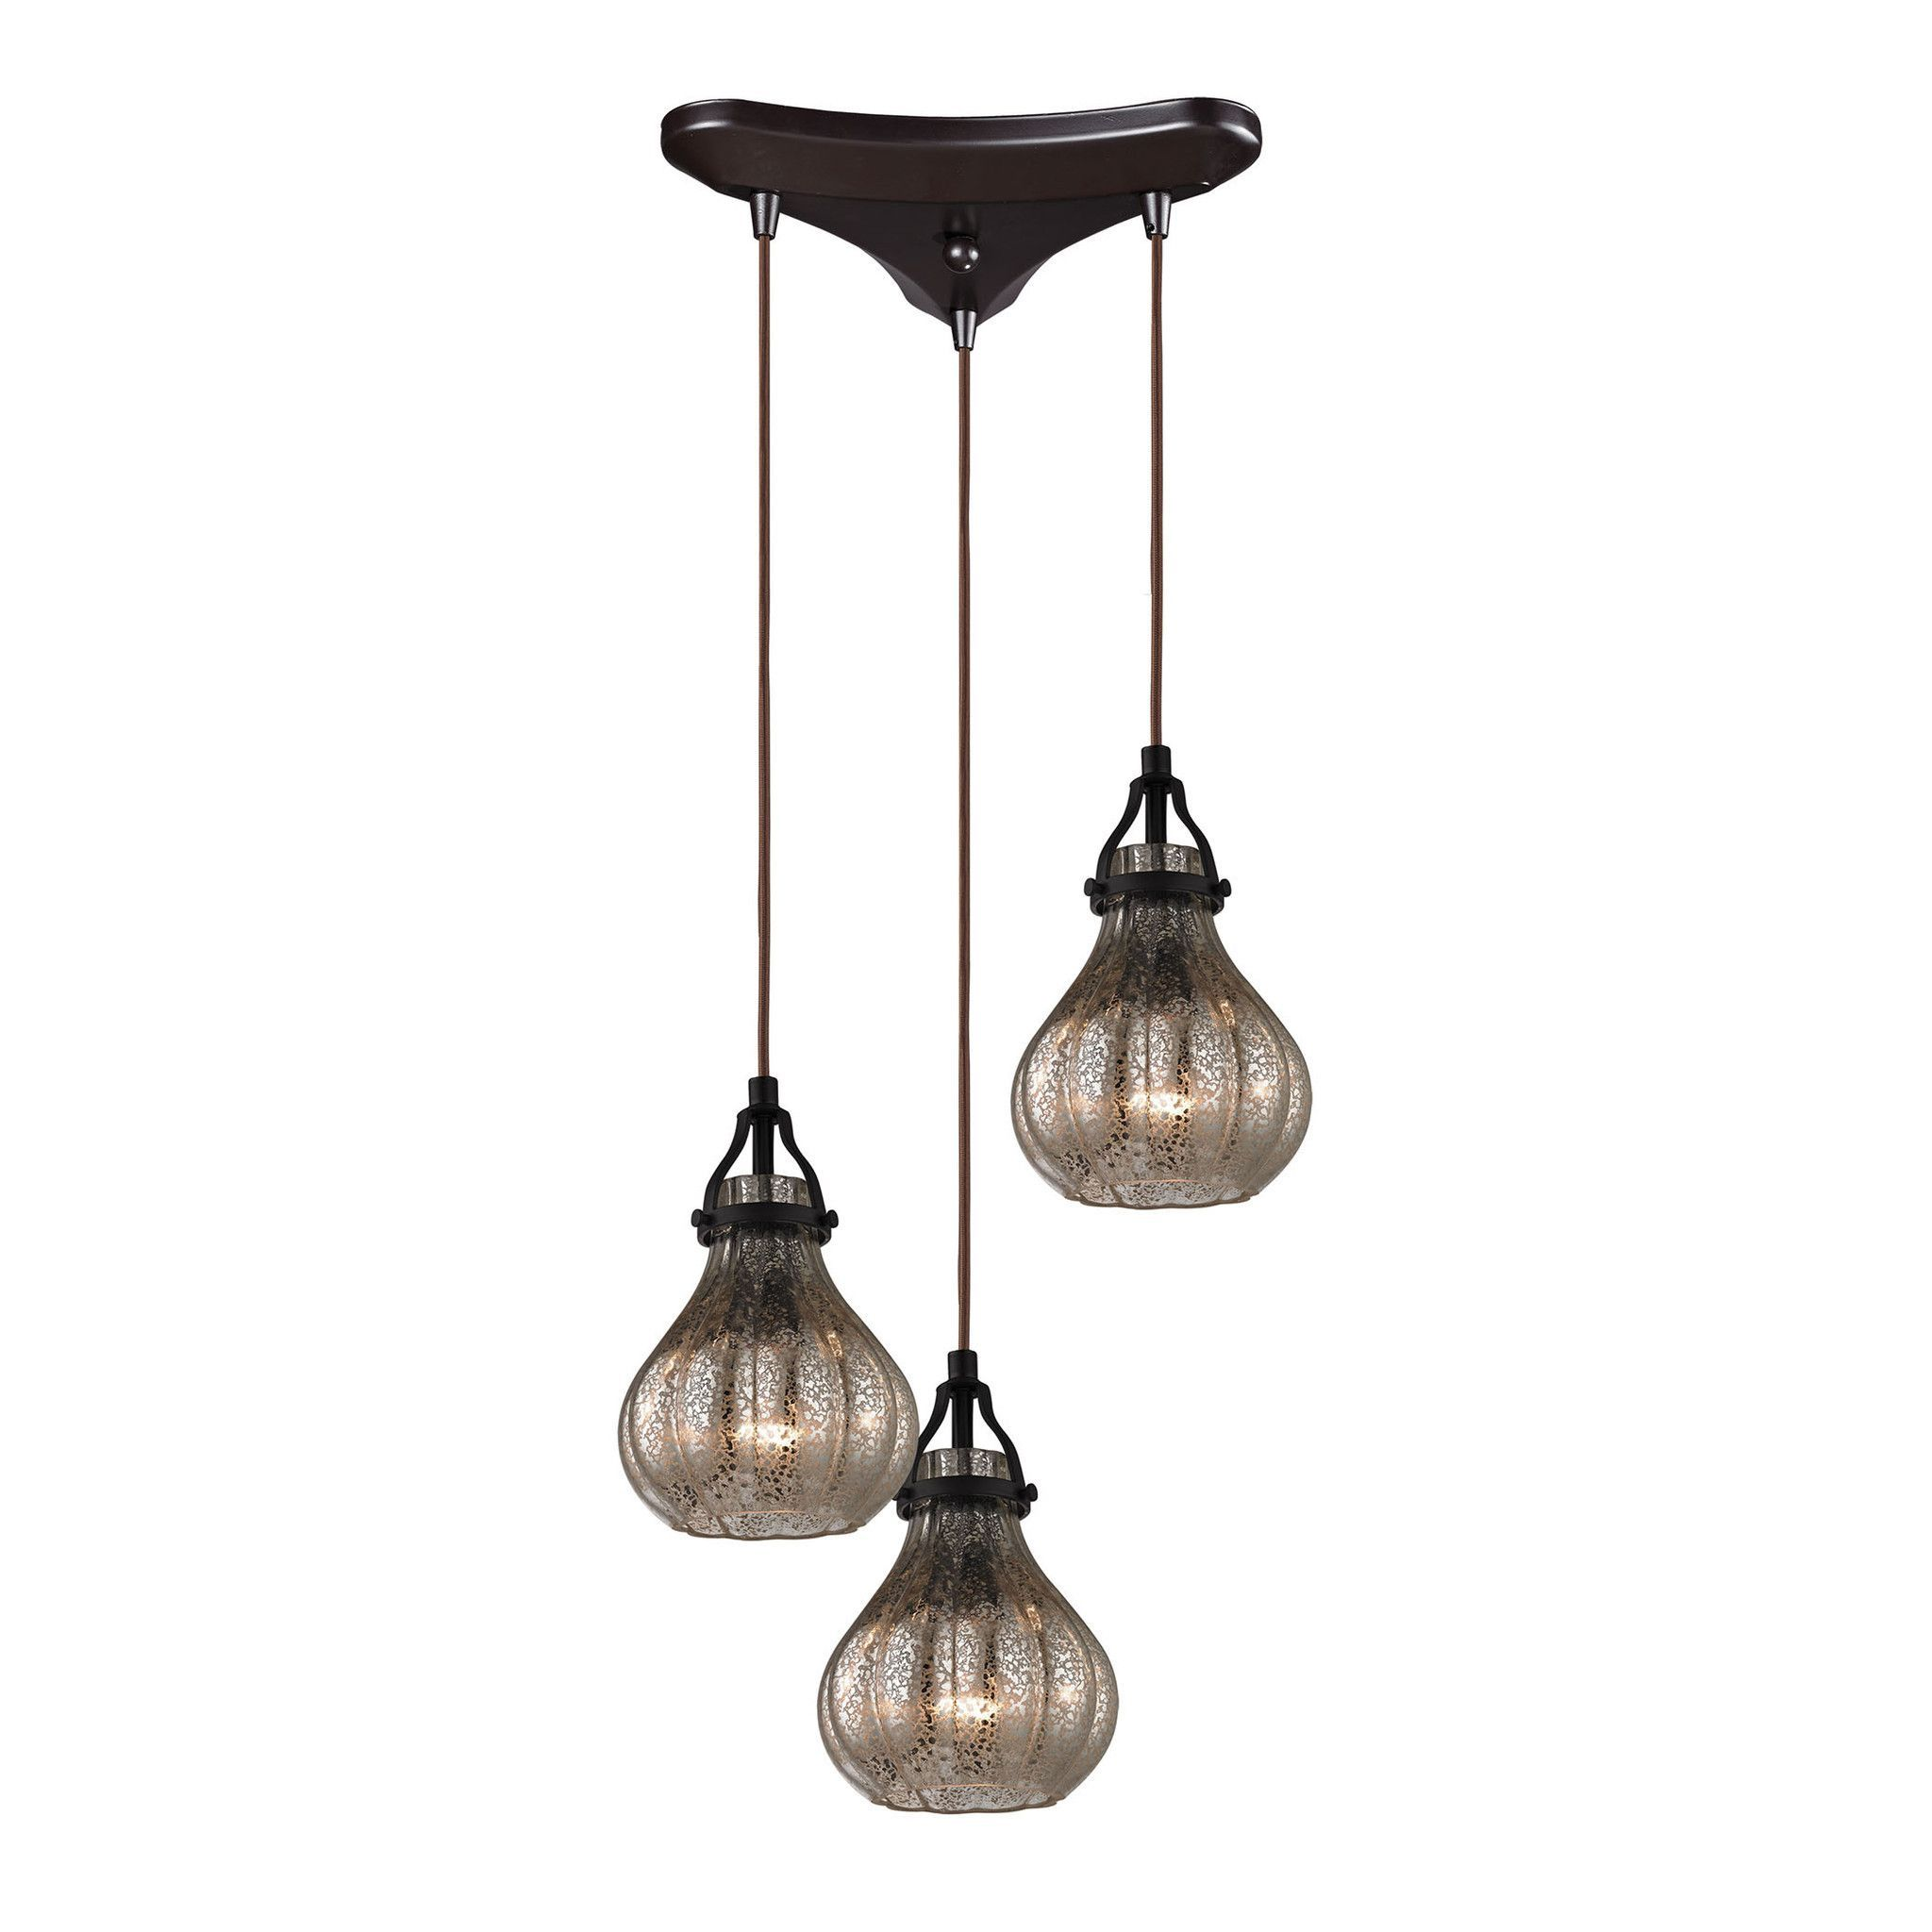 ELK Lighting 46024/3 Danica Collection Oil Rubbed Bronze Finish